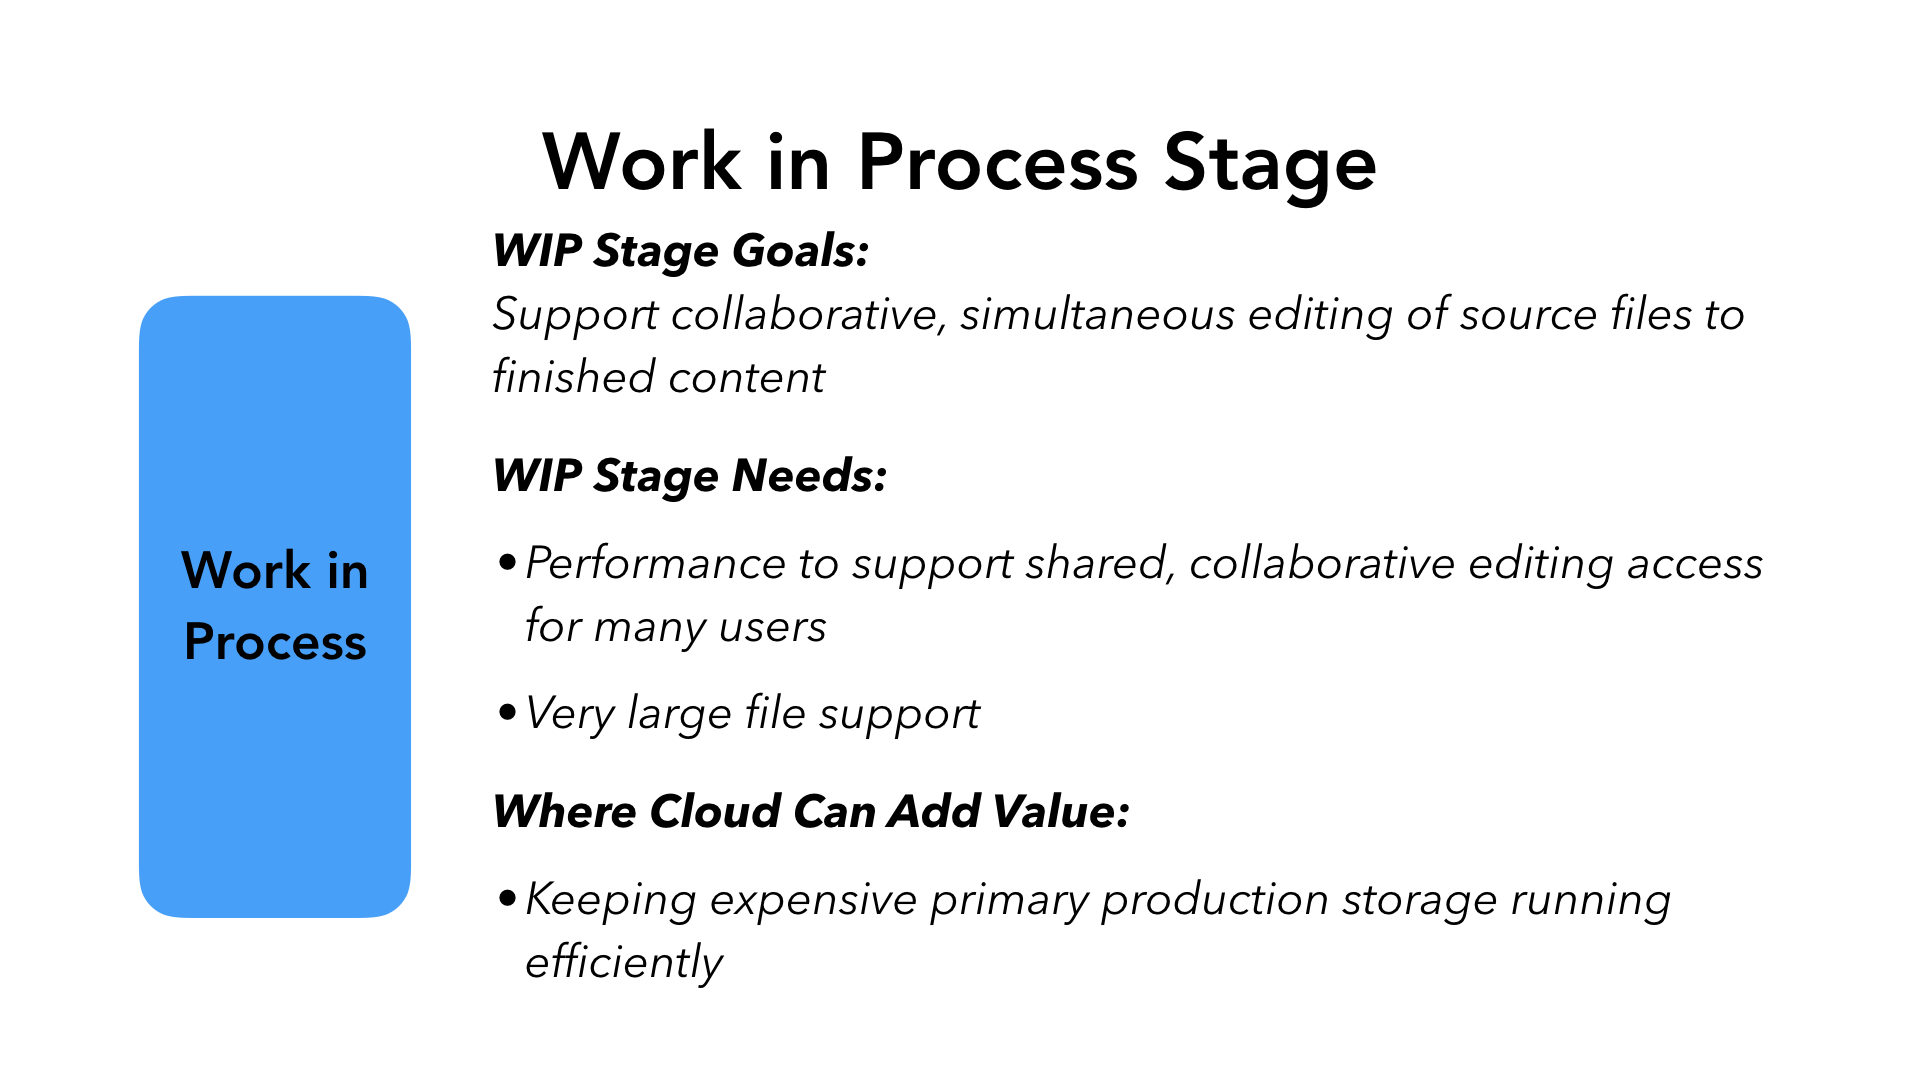 Work in Process Stage - WIP Stage Goals: Support collaborative, simultaneous editing of source files to finished content. WIP Stage Needs: Performance to support shared, collaborative editing access for many users. Very large file support. Where Cloud Can Add Value: Keeping expensive primary production storage running efficiently.